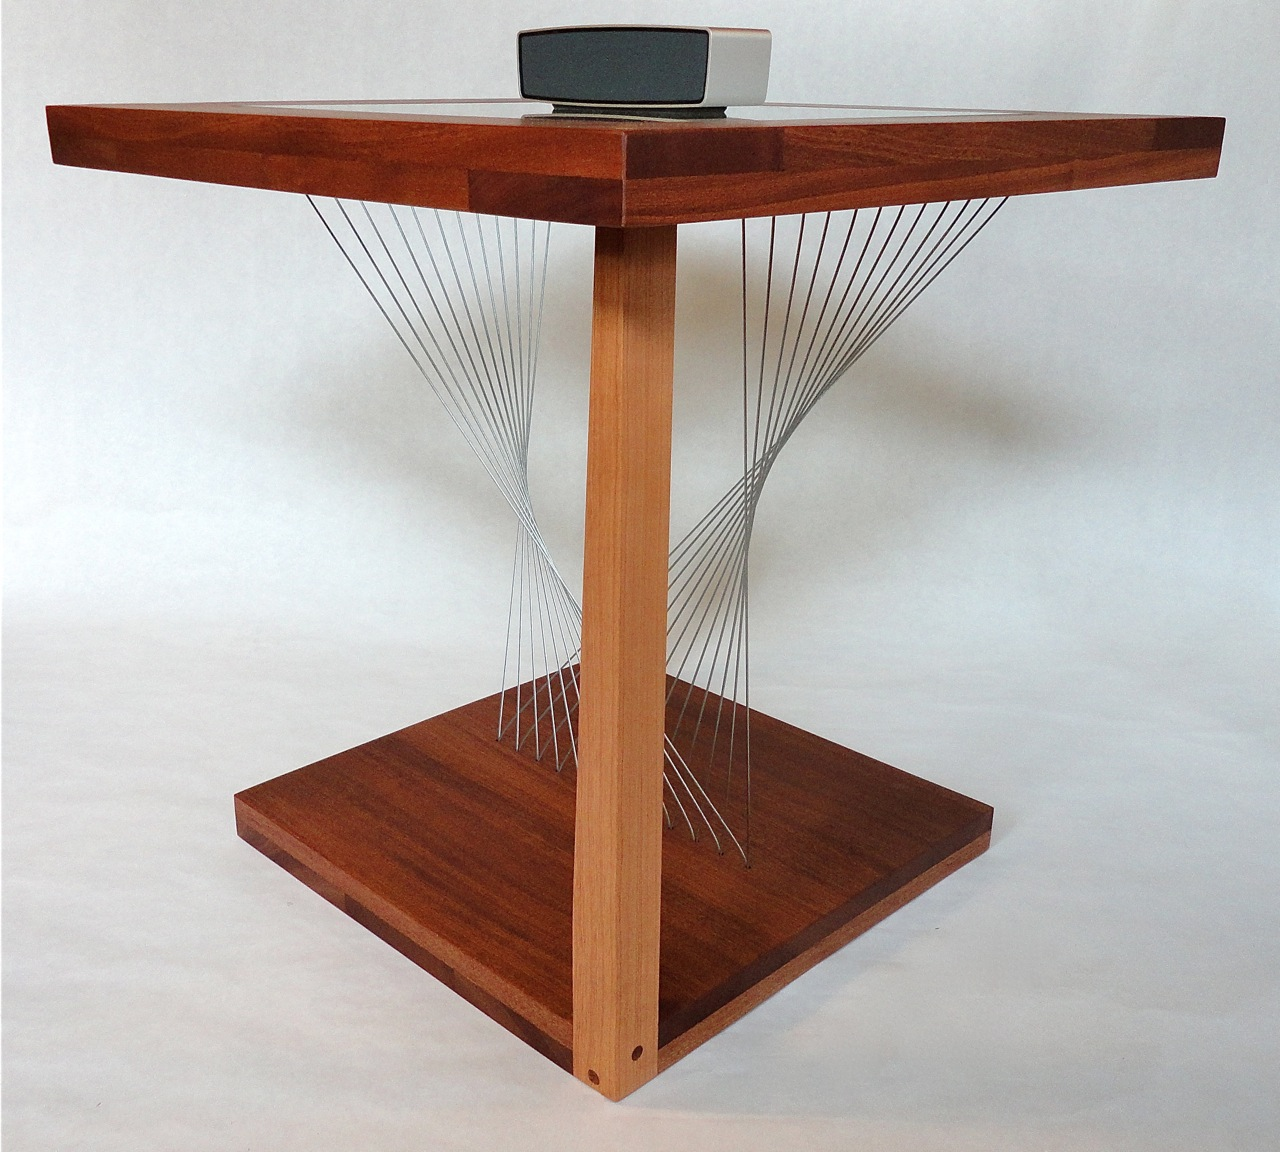 Sculpture end table Robby Cuthbert